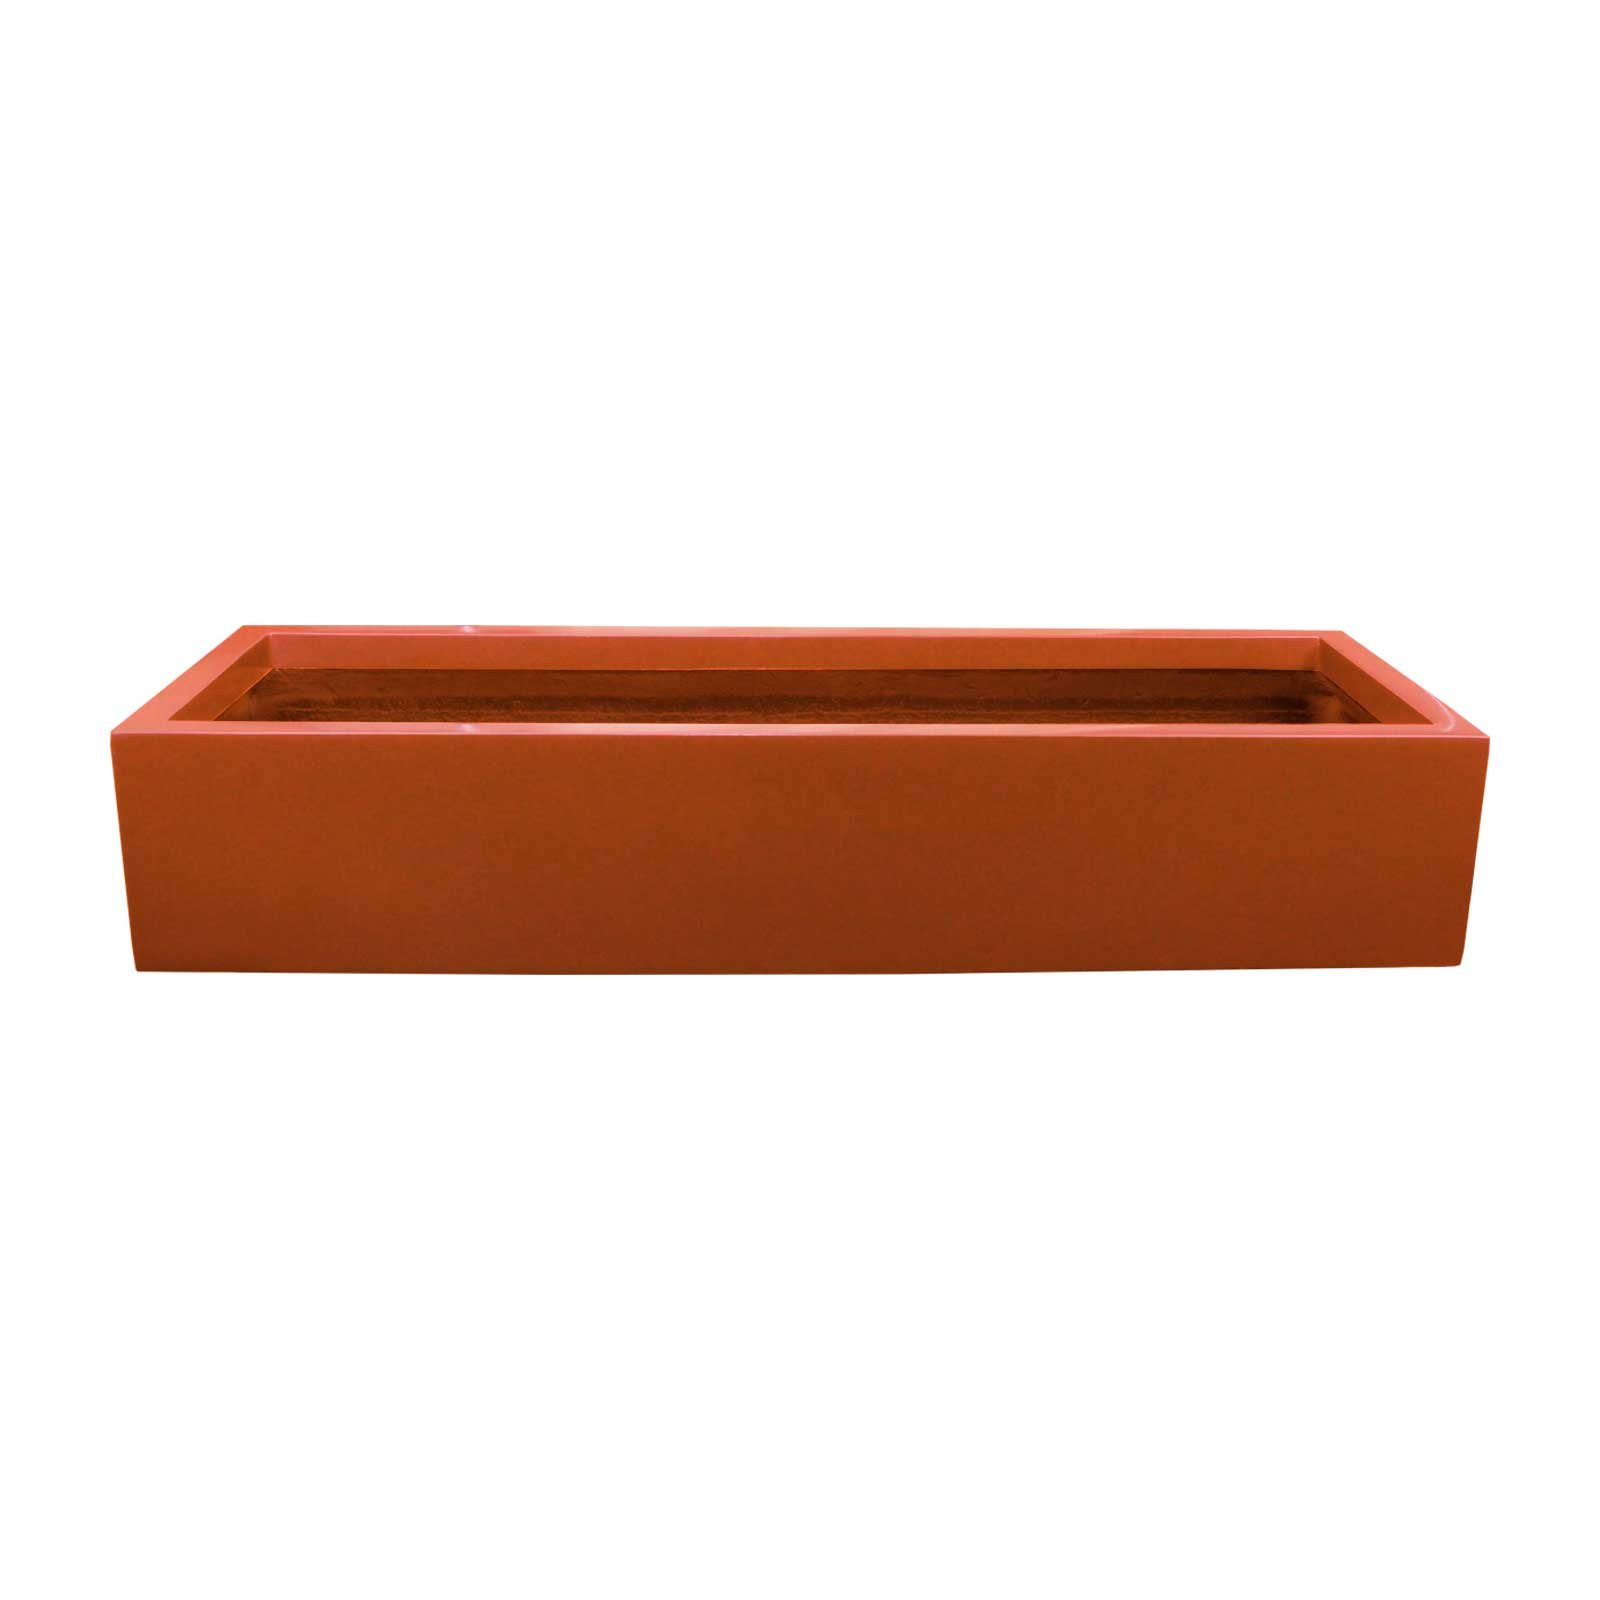 Outdoor Fiberglass Planter Box - 45'L x 15'W x 8'H